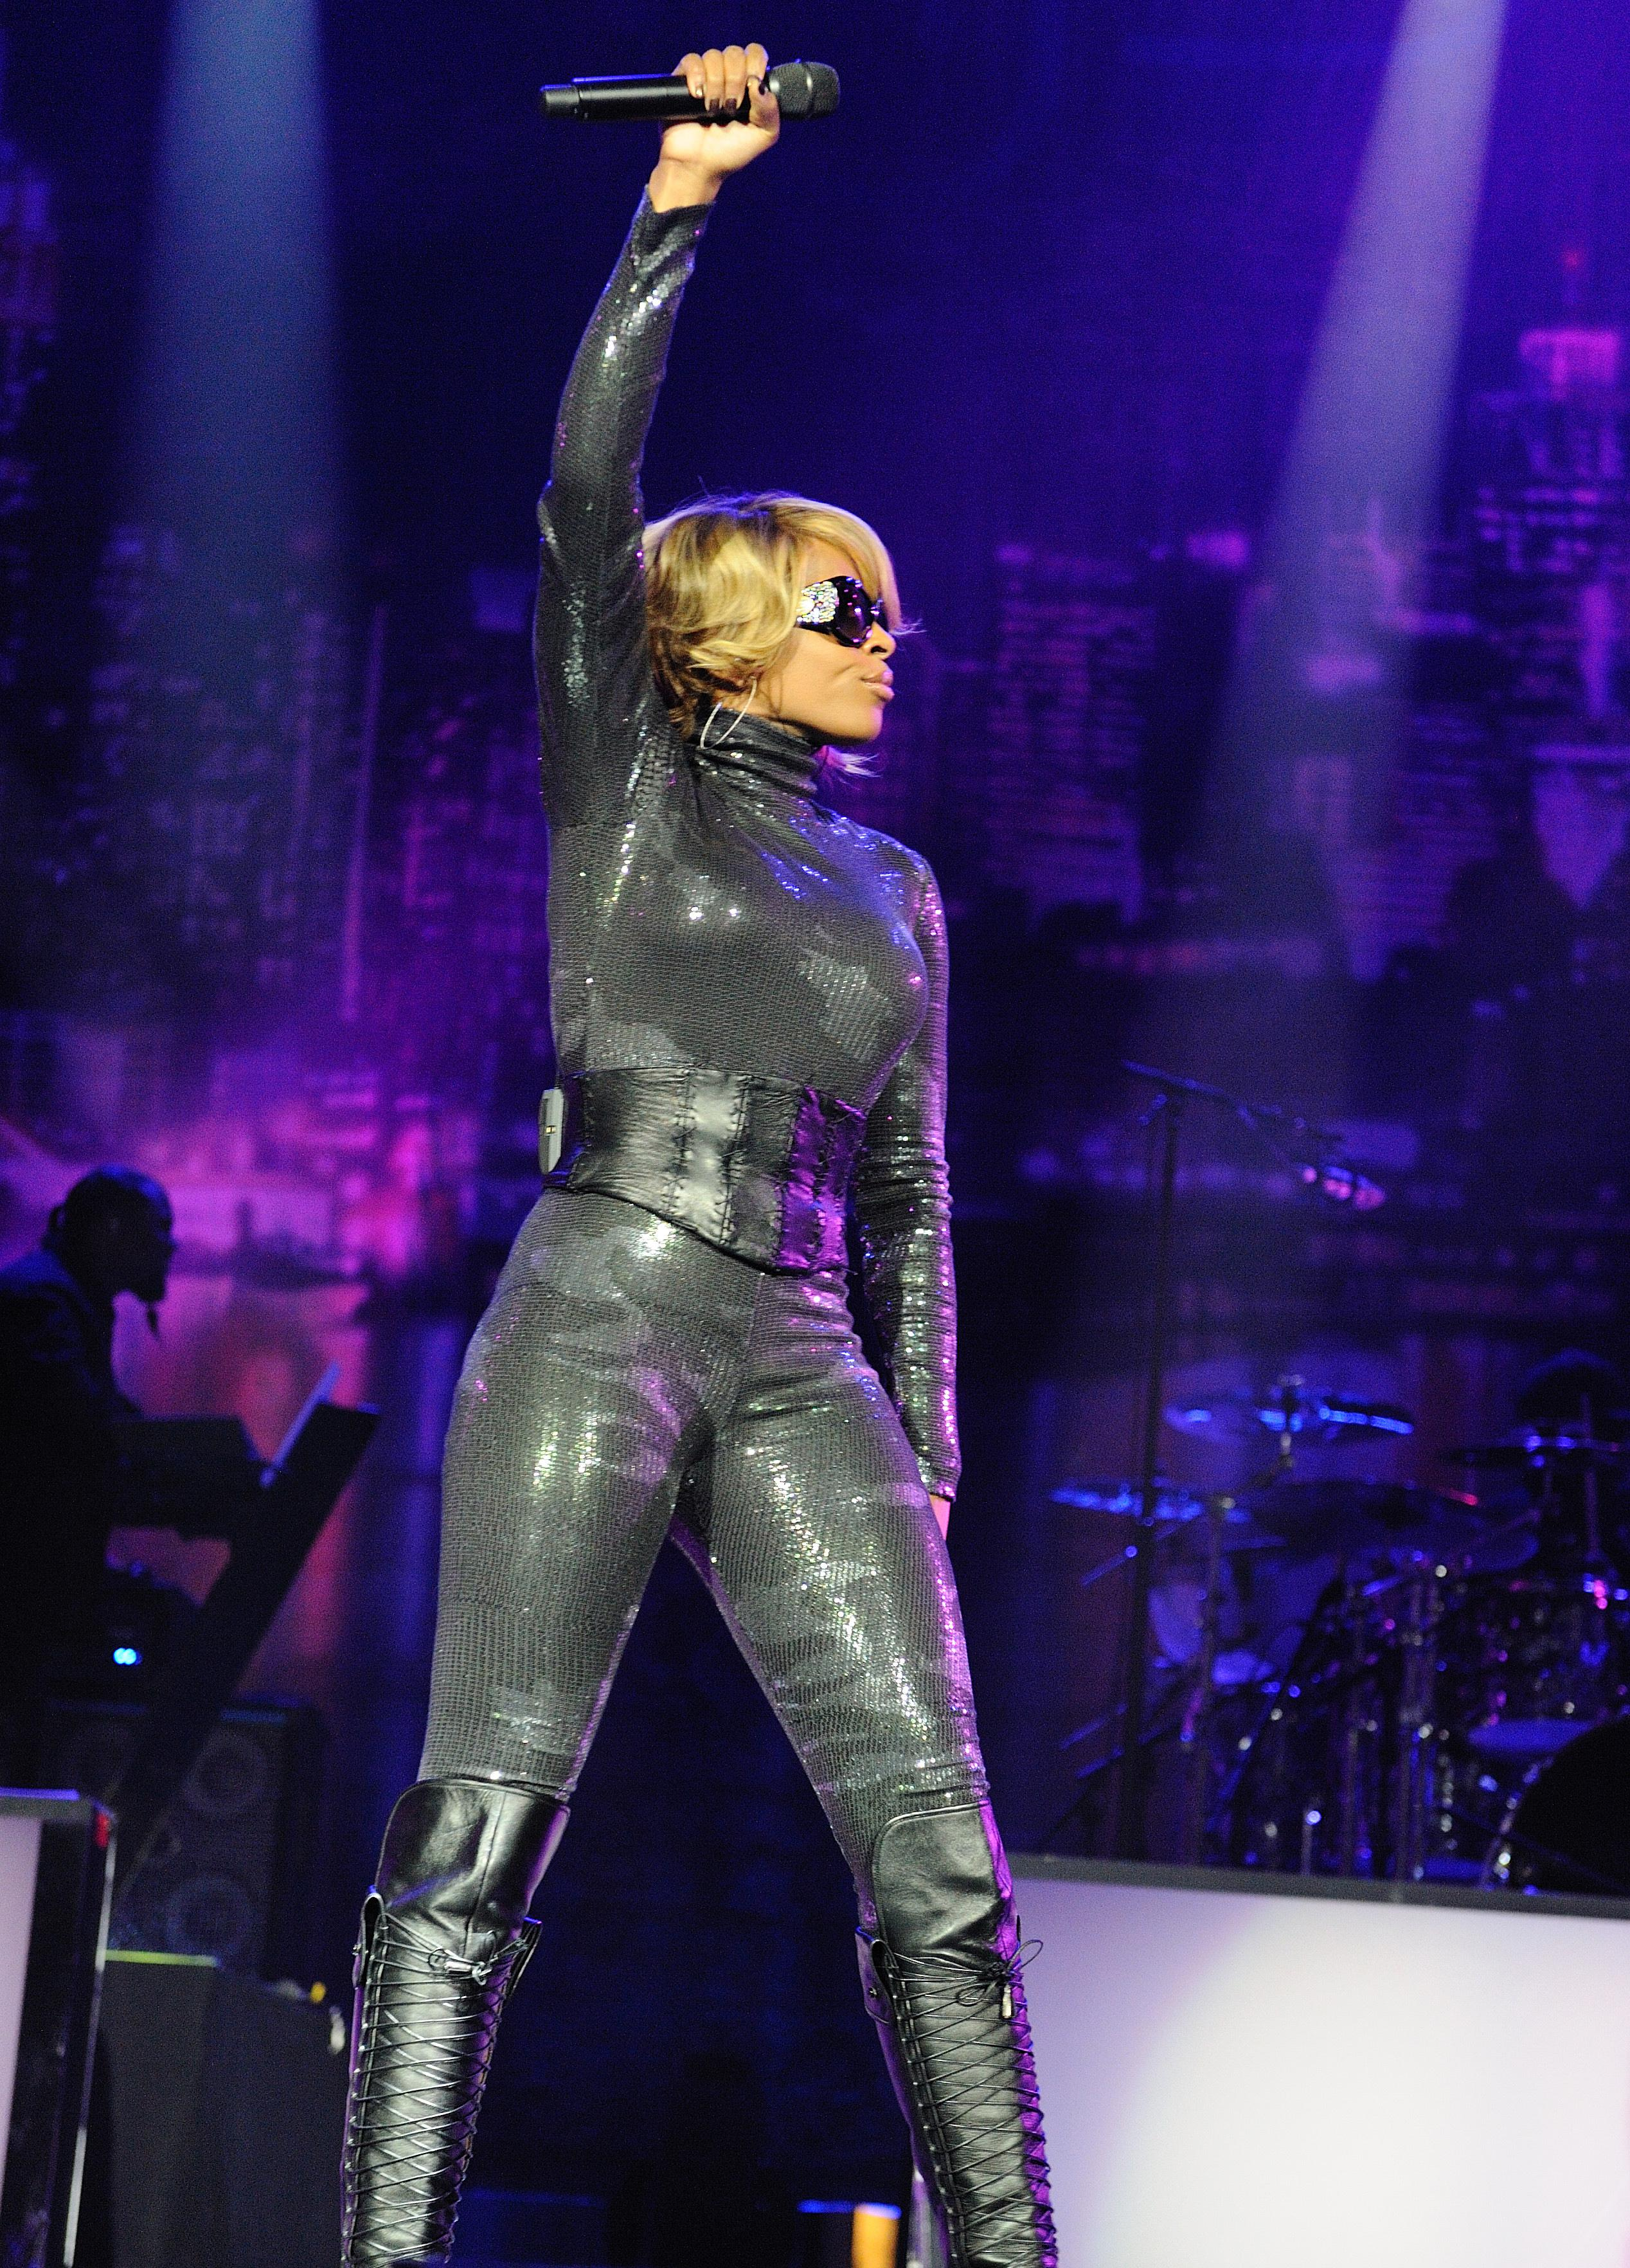 Mary J Blige And Lemar Perform At The O2 Arena In London